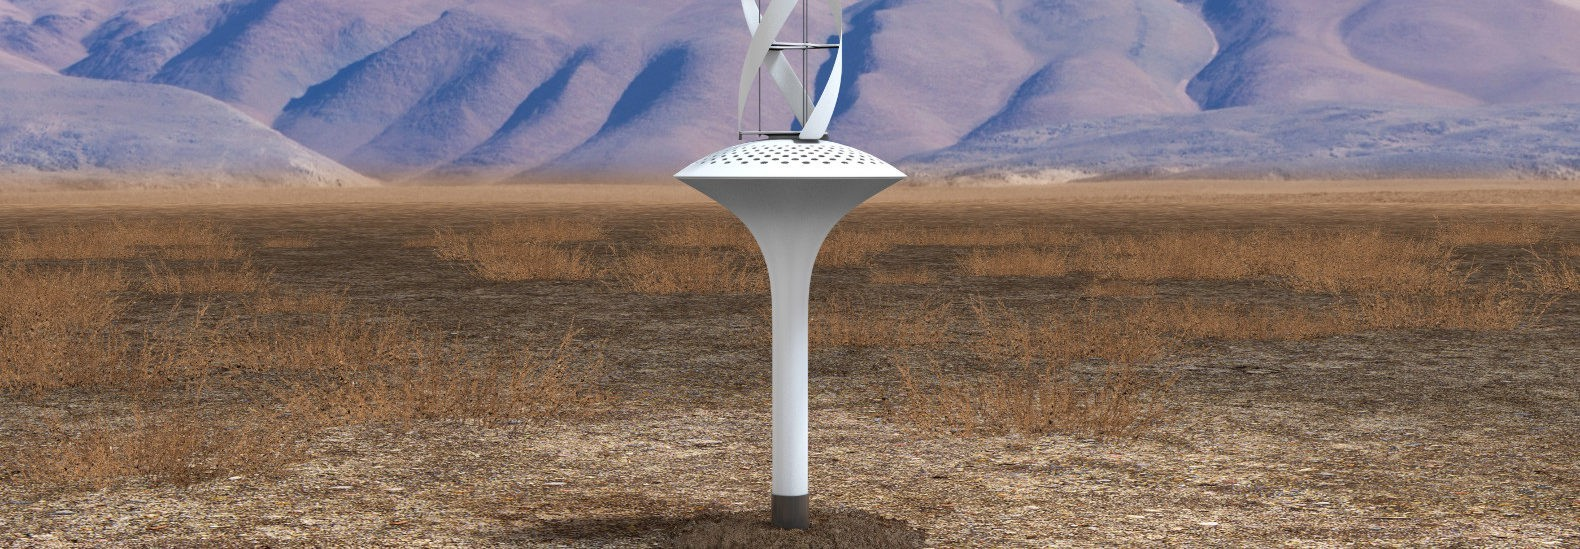 This wind powered water condenser can pull 11 gallons of clean water out of air each day for drinking